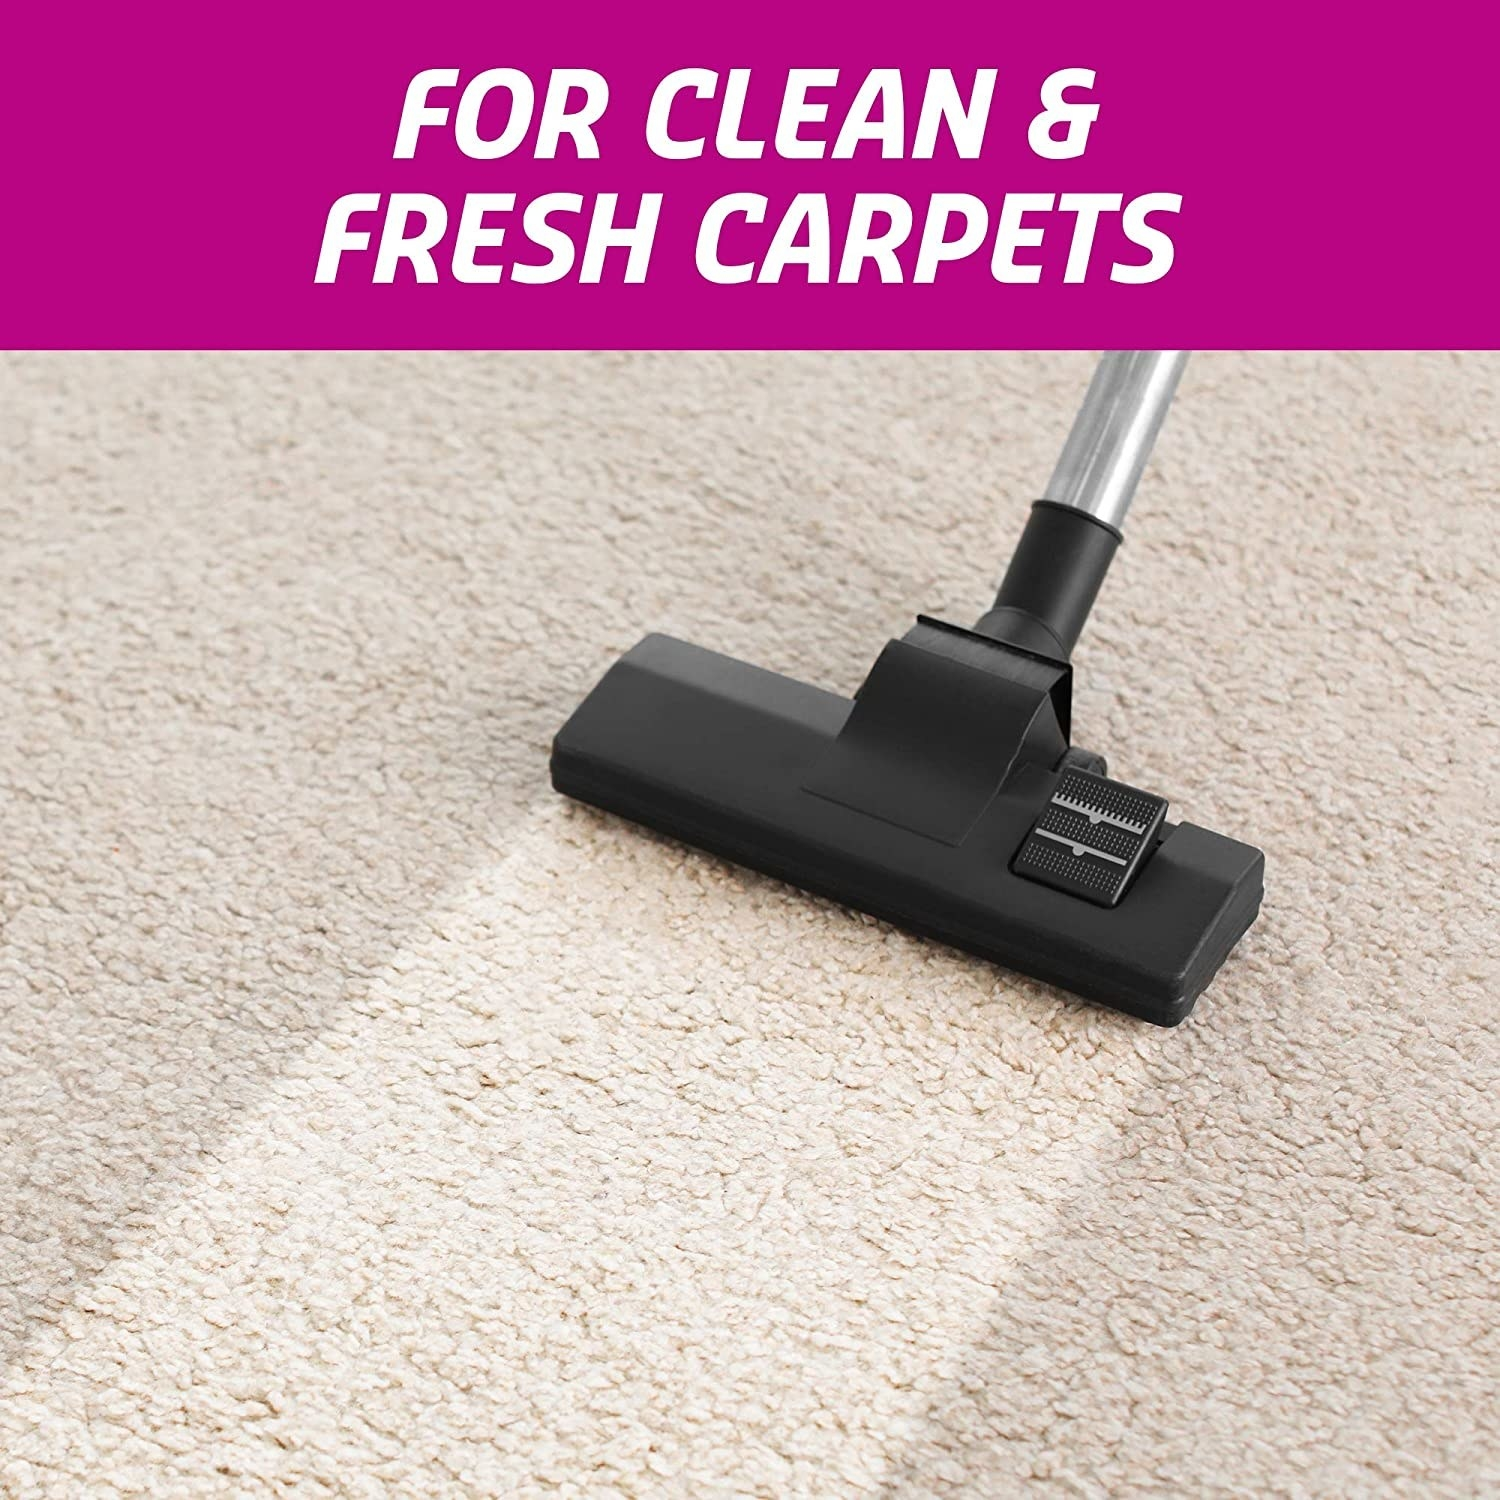 Clean patch of dirty carpet following the head of a vaccuum cleaner